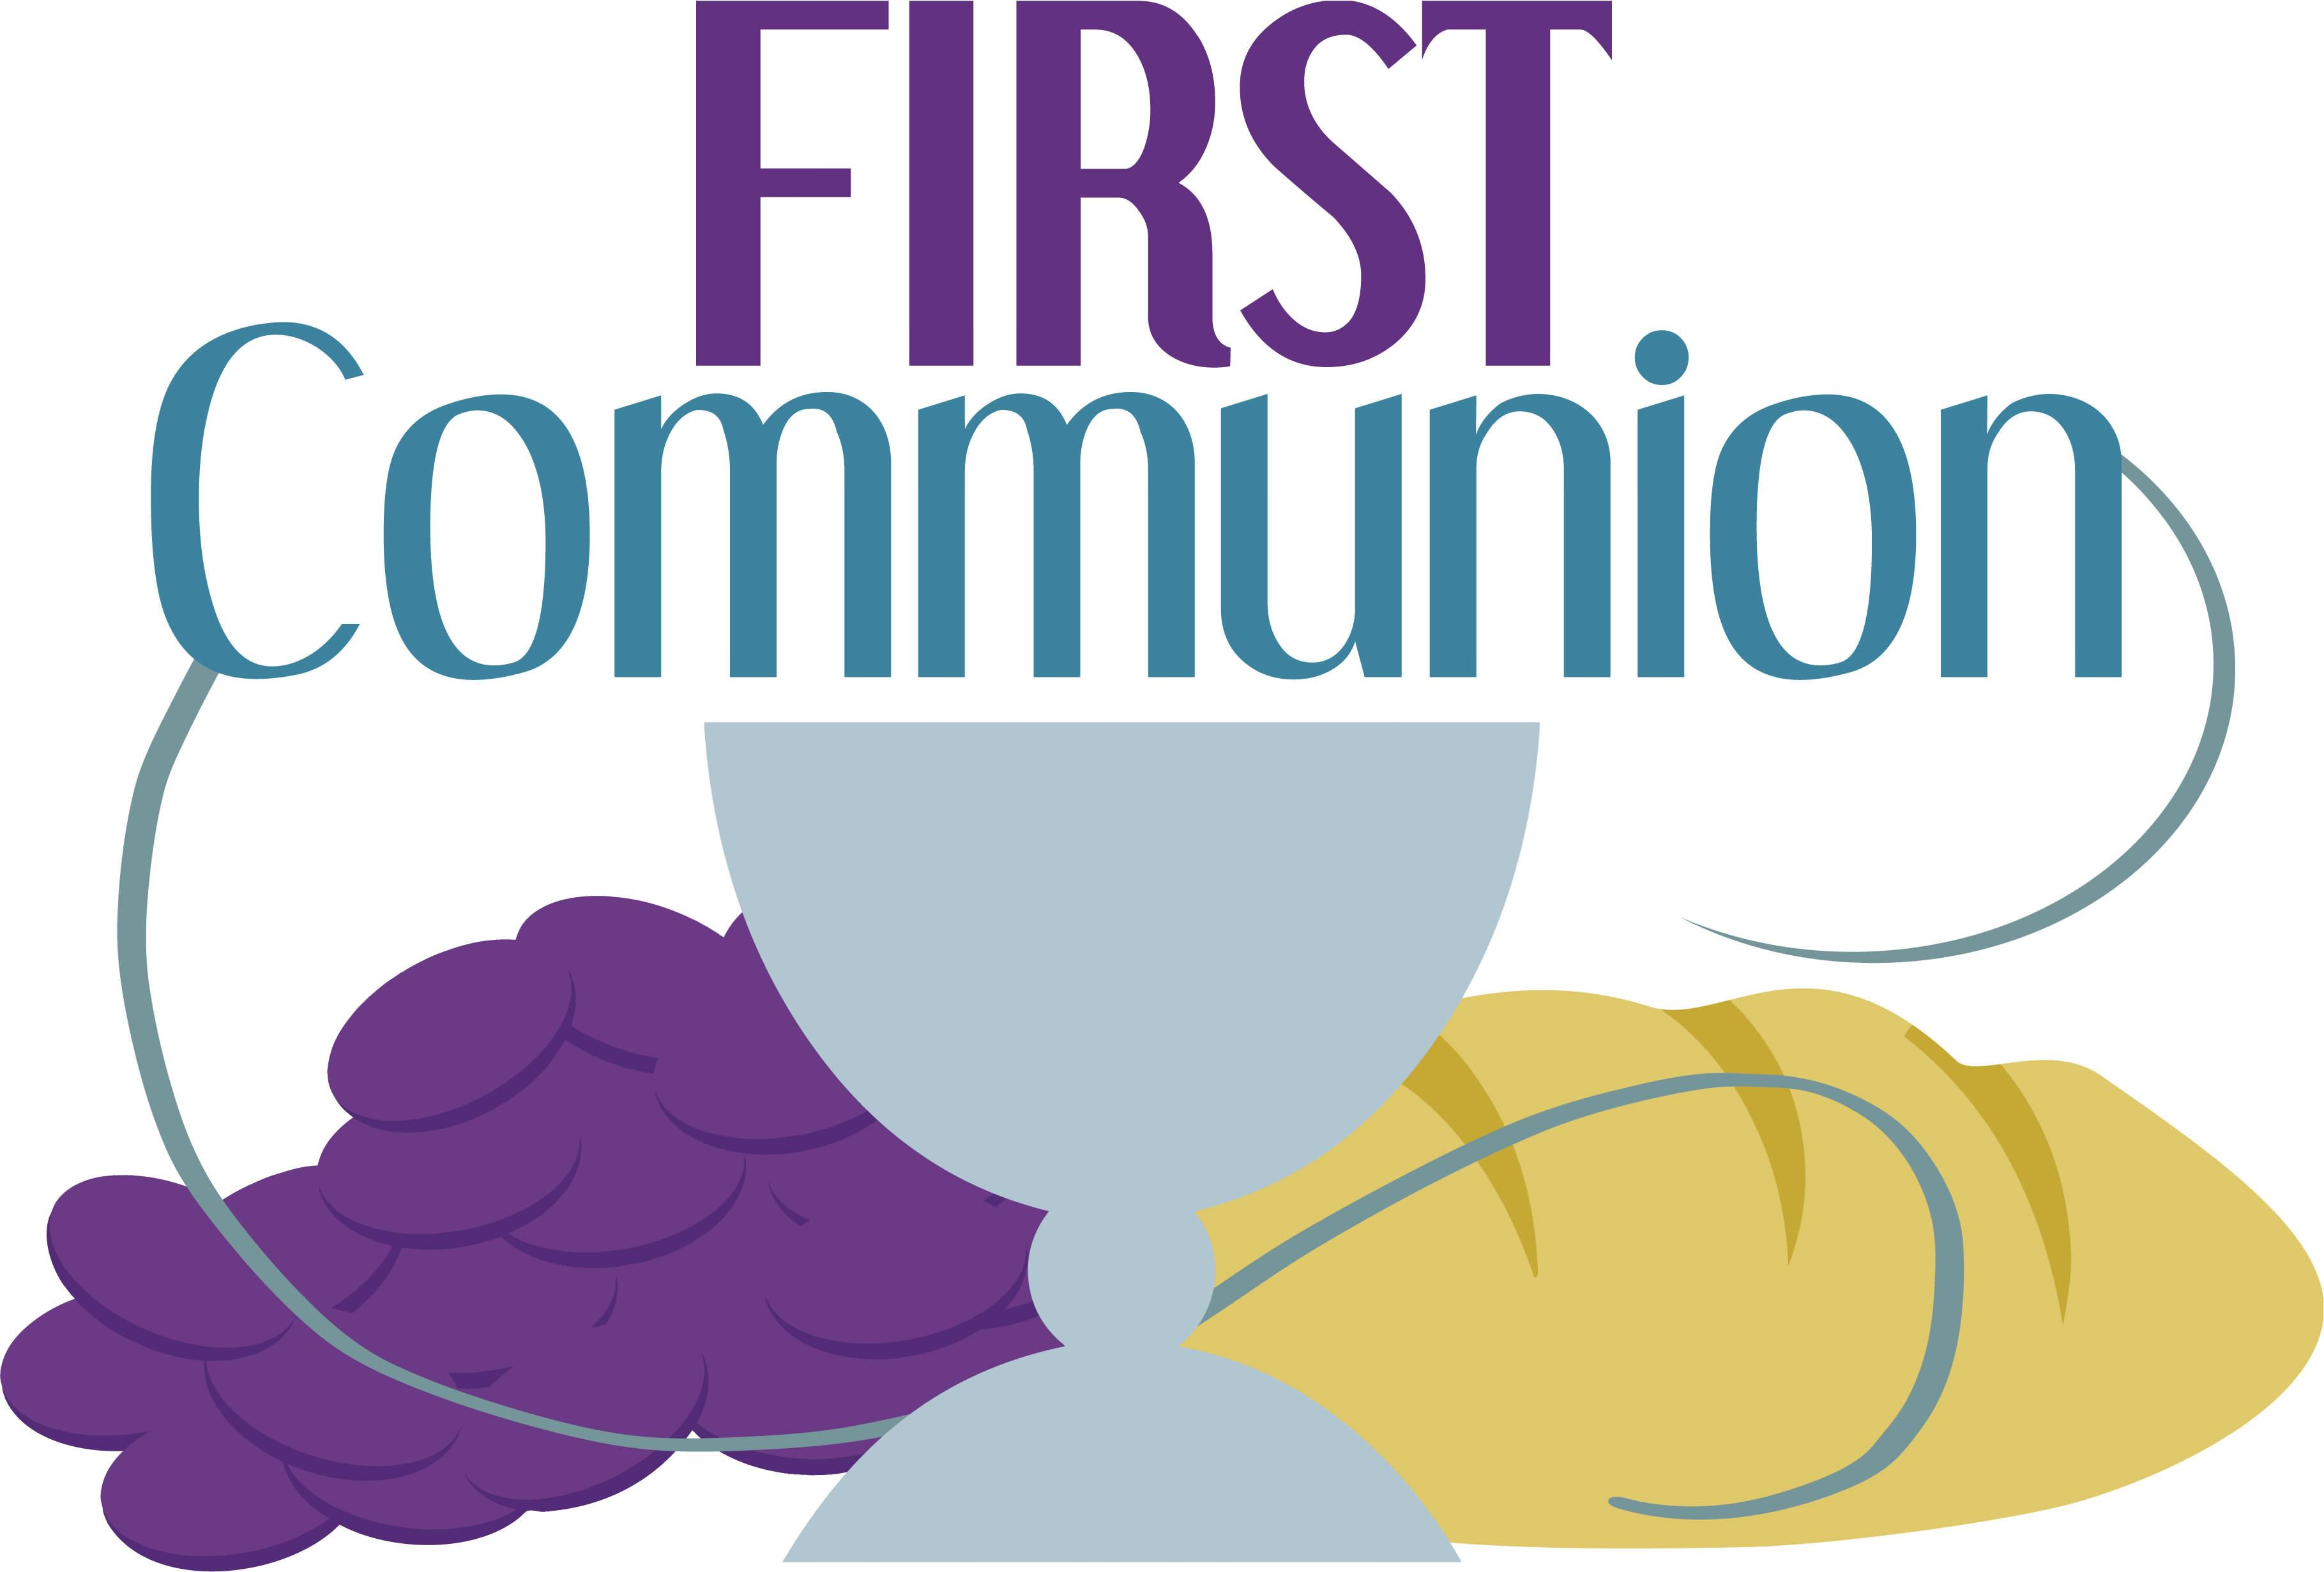 First communion clipart free 8 » Clipart Portal.